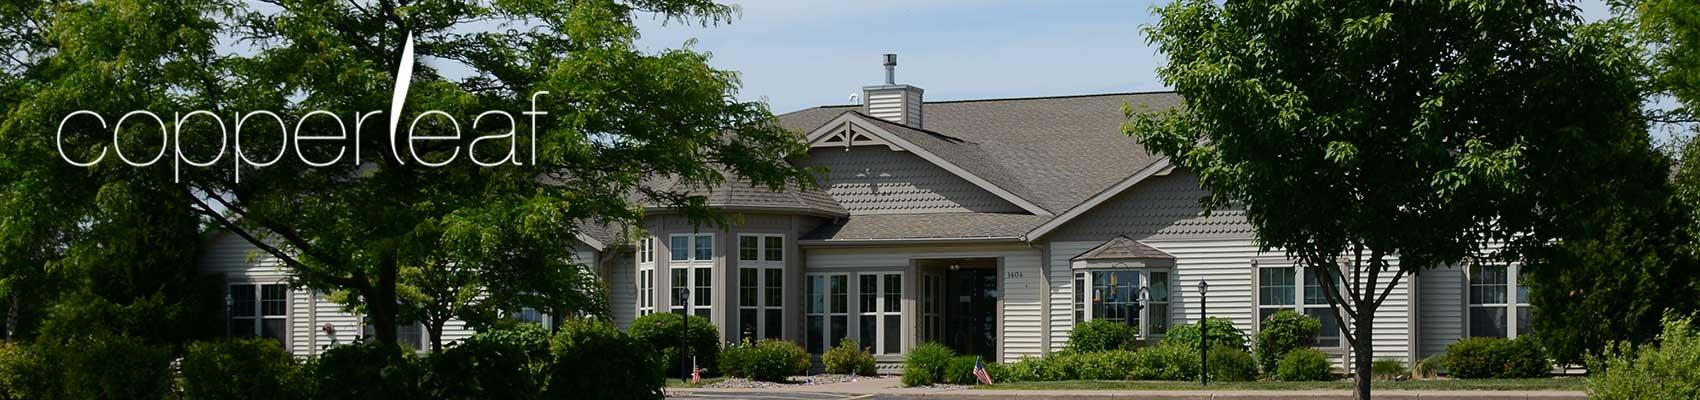 Assisted Living assisted living facilities Kellner Wisconsin Portage County